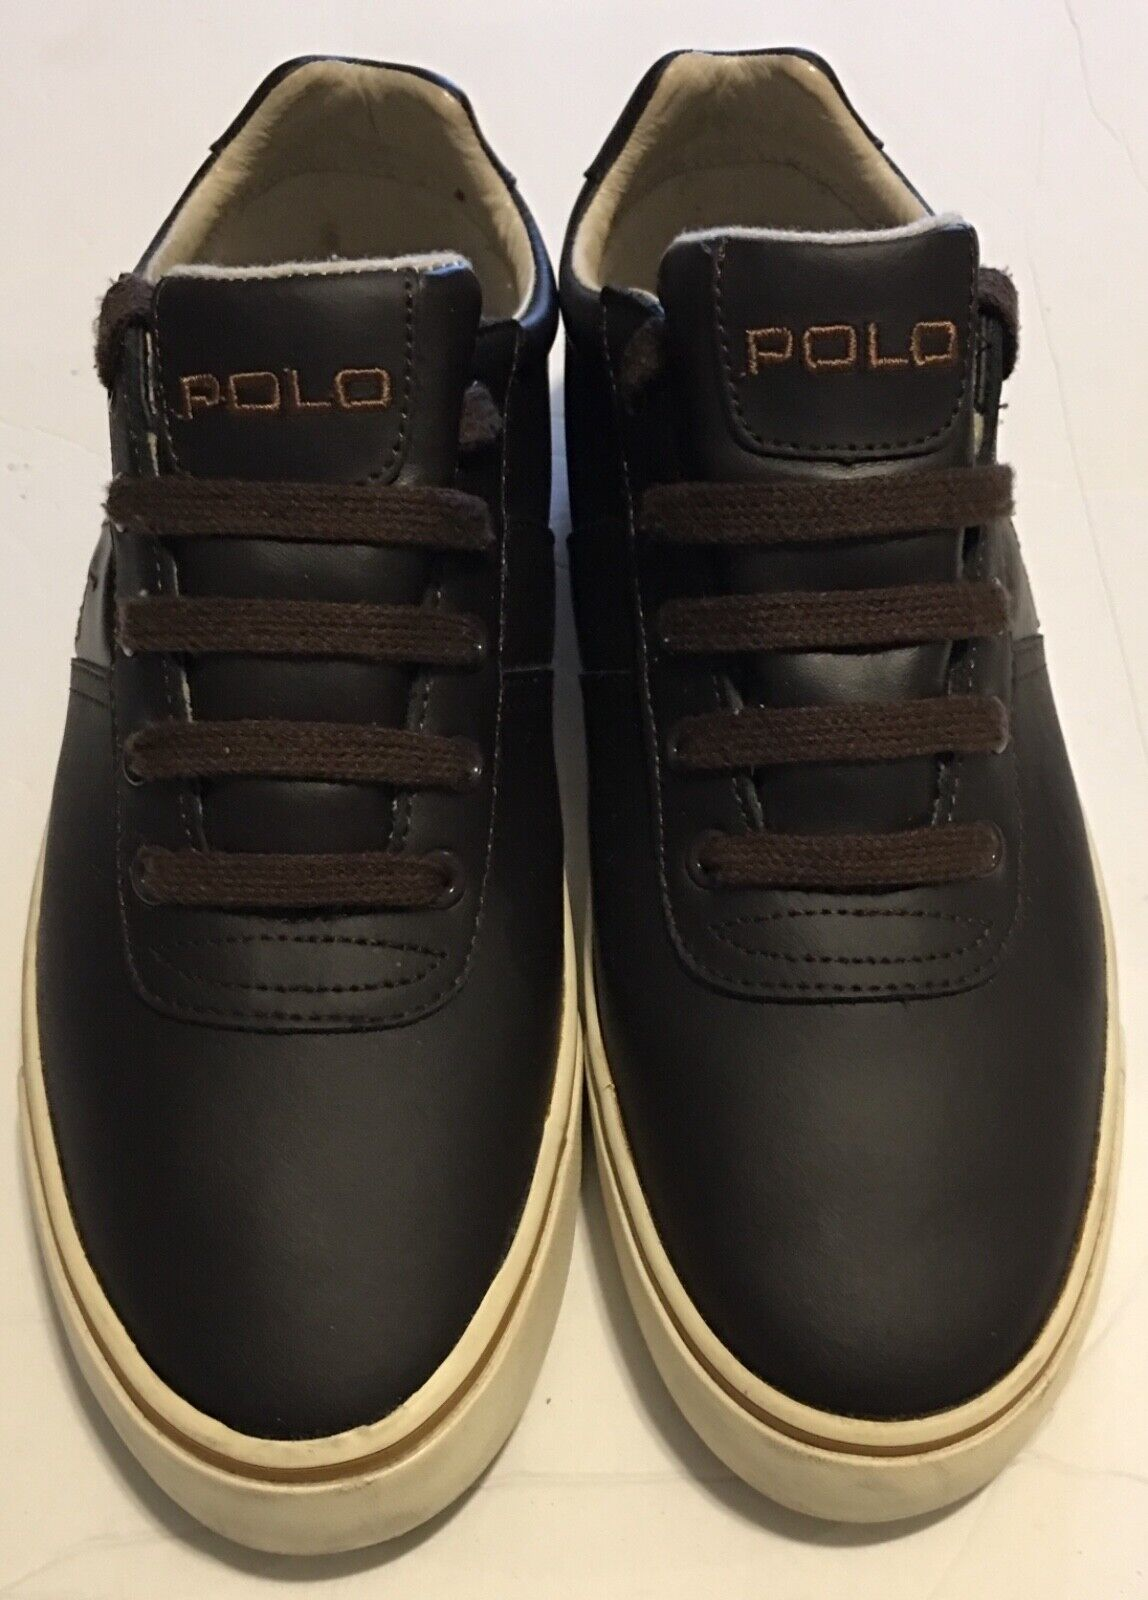 POLO RALPH LAUREN Mens Brown Leather Casual Sneaker Size 9D